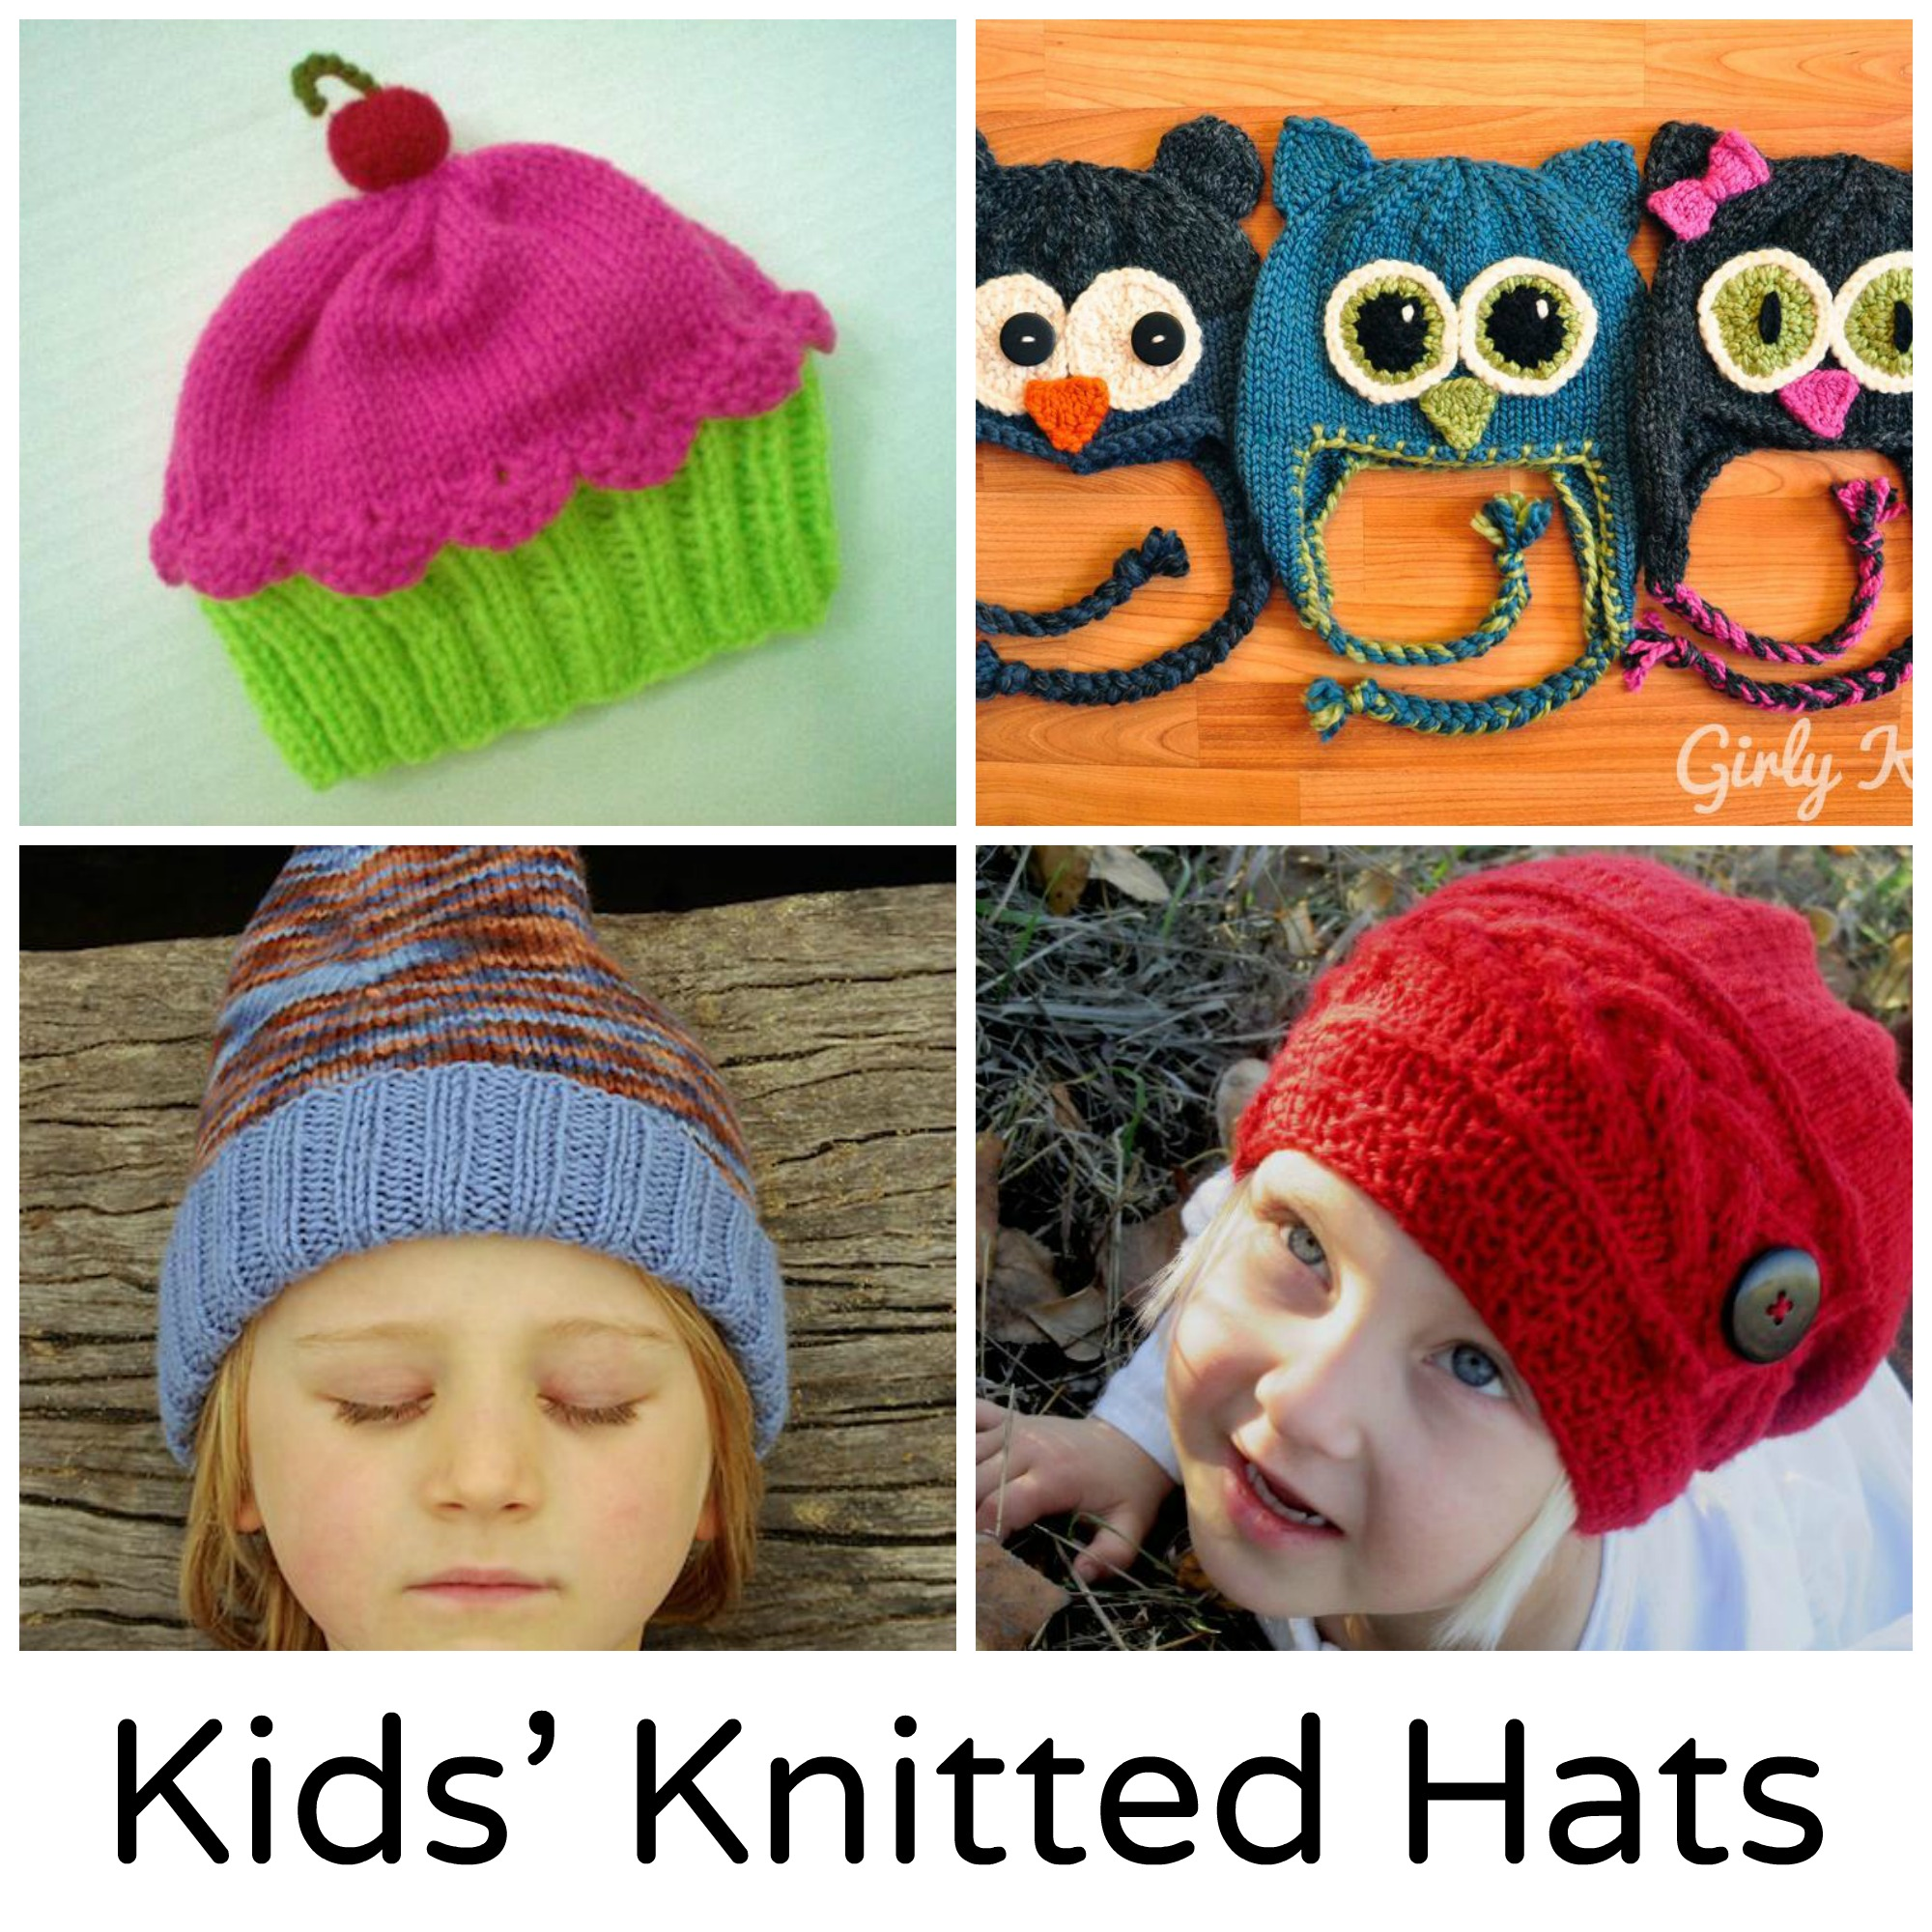 Kids' Knitted Hats